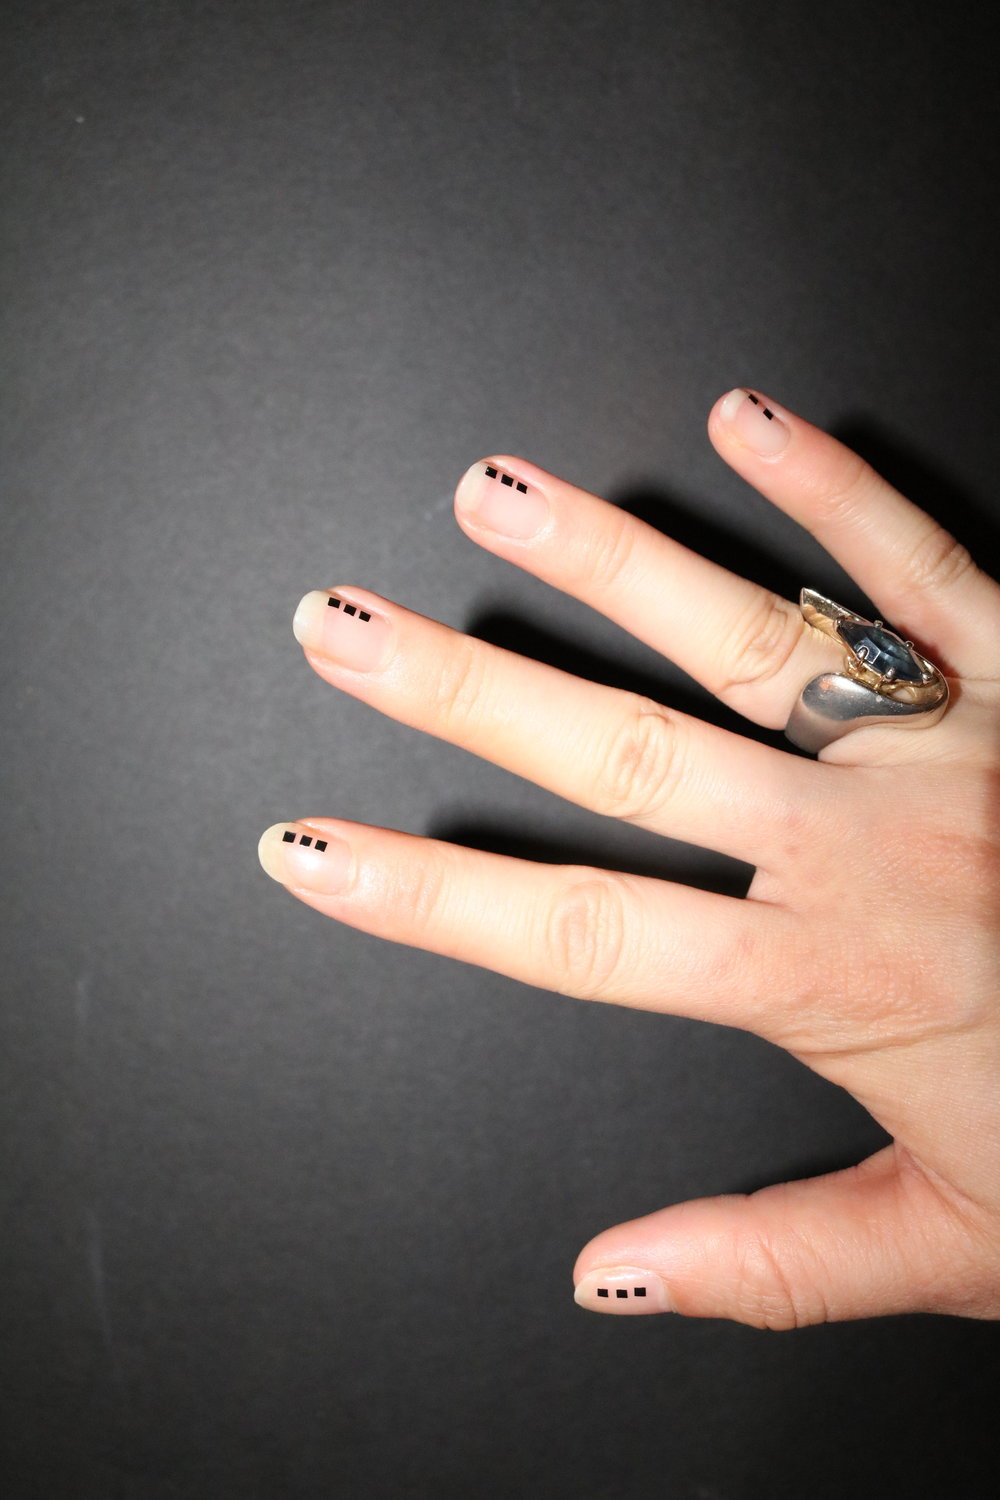 nail art party with tori-july21-studio625-13.JPG